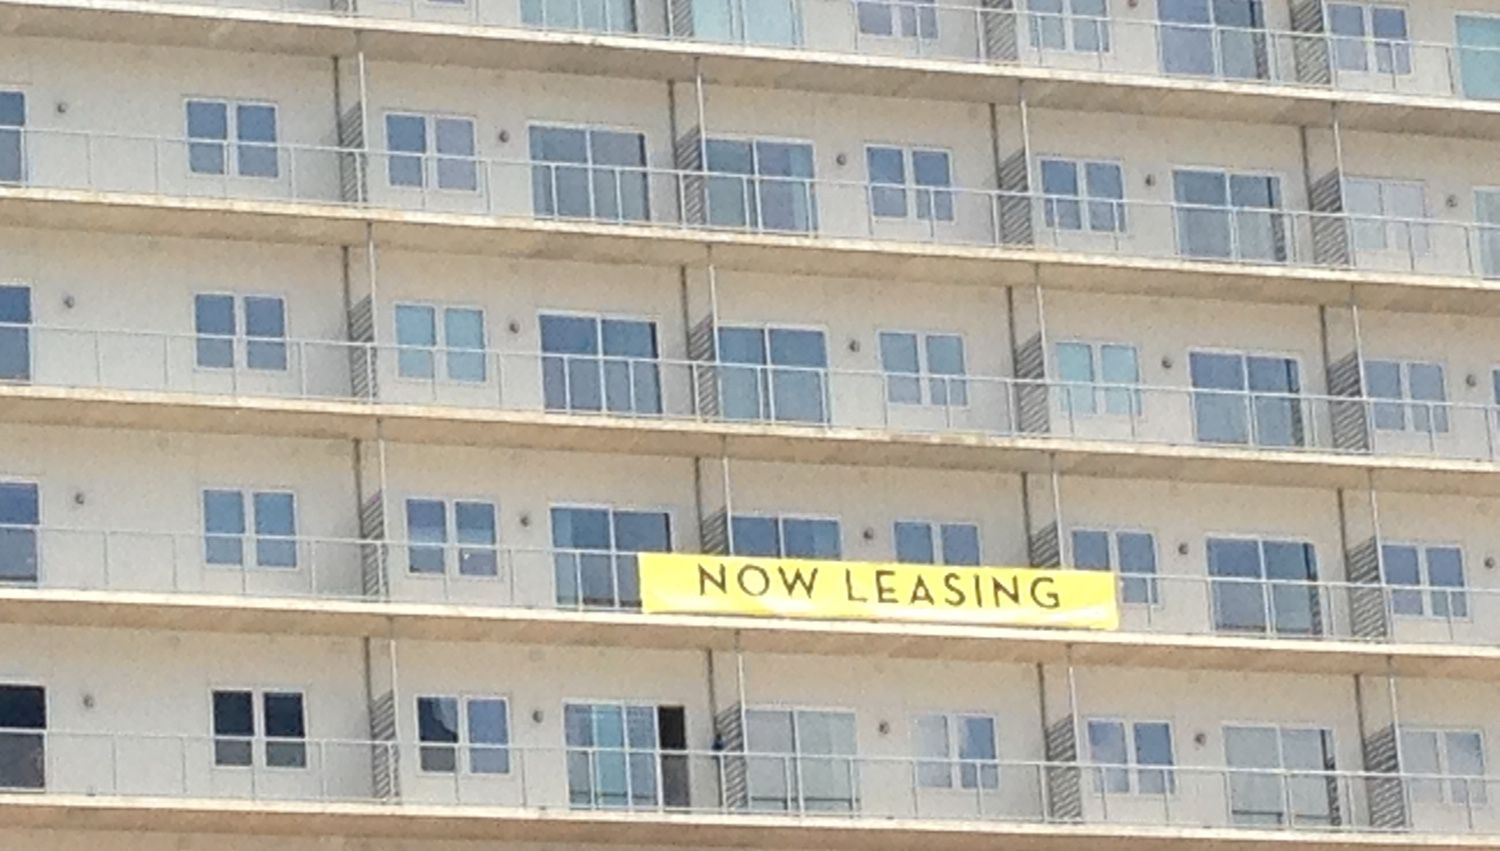 Rents for apartments, offices and other D-FW properties are expected to rise only modestly in 2018.